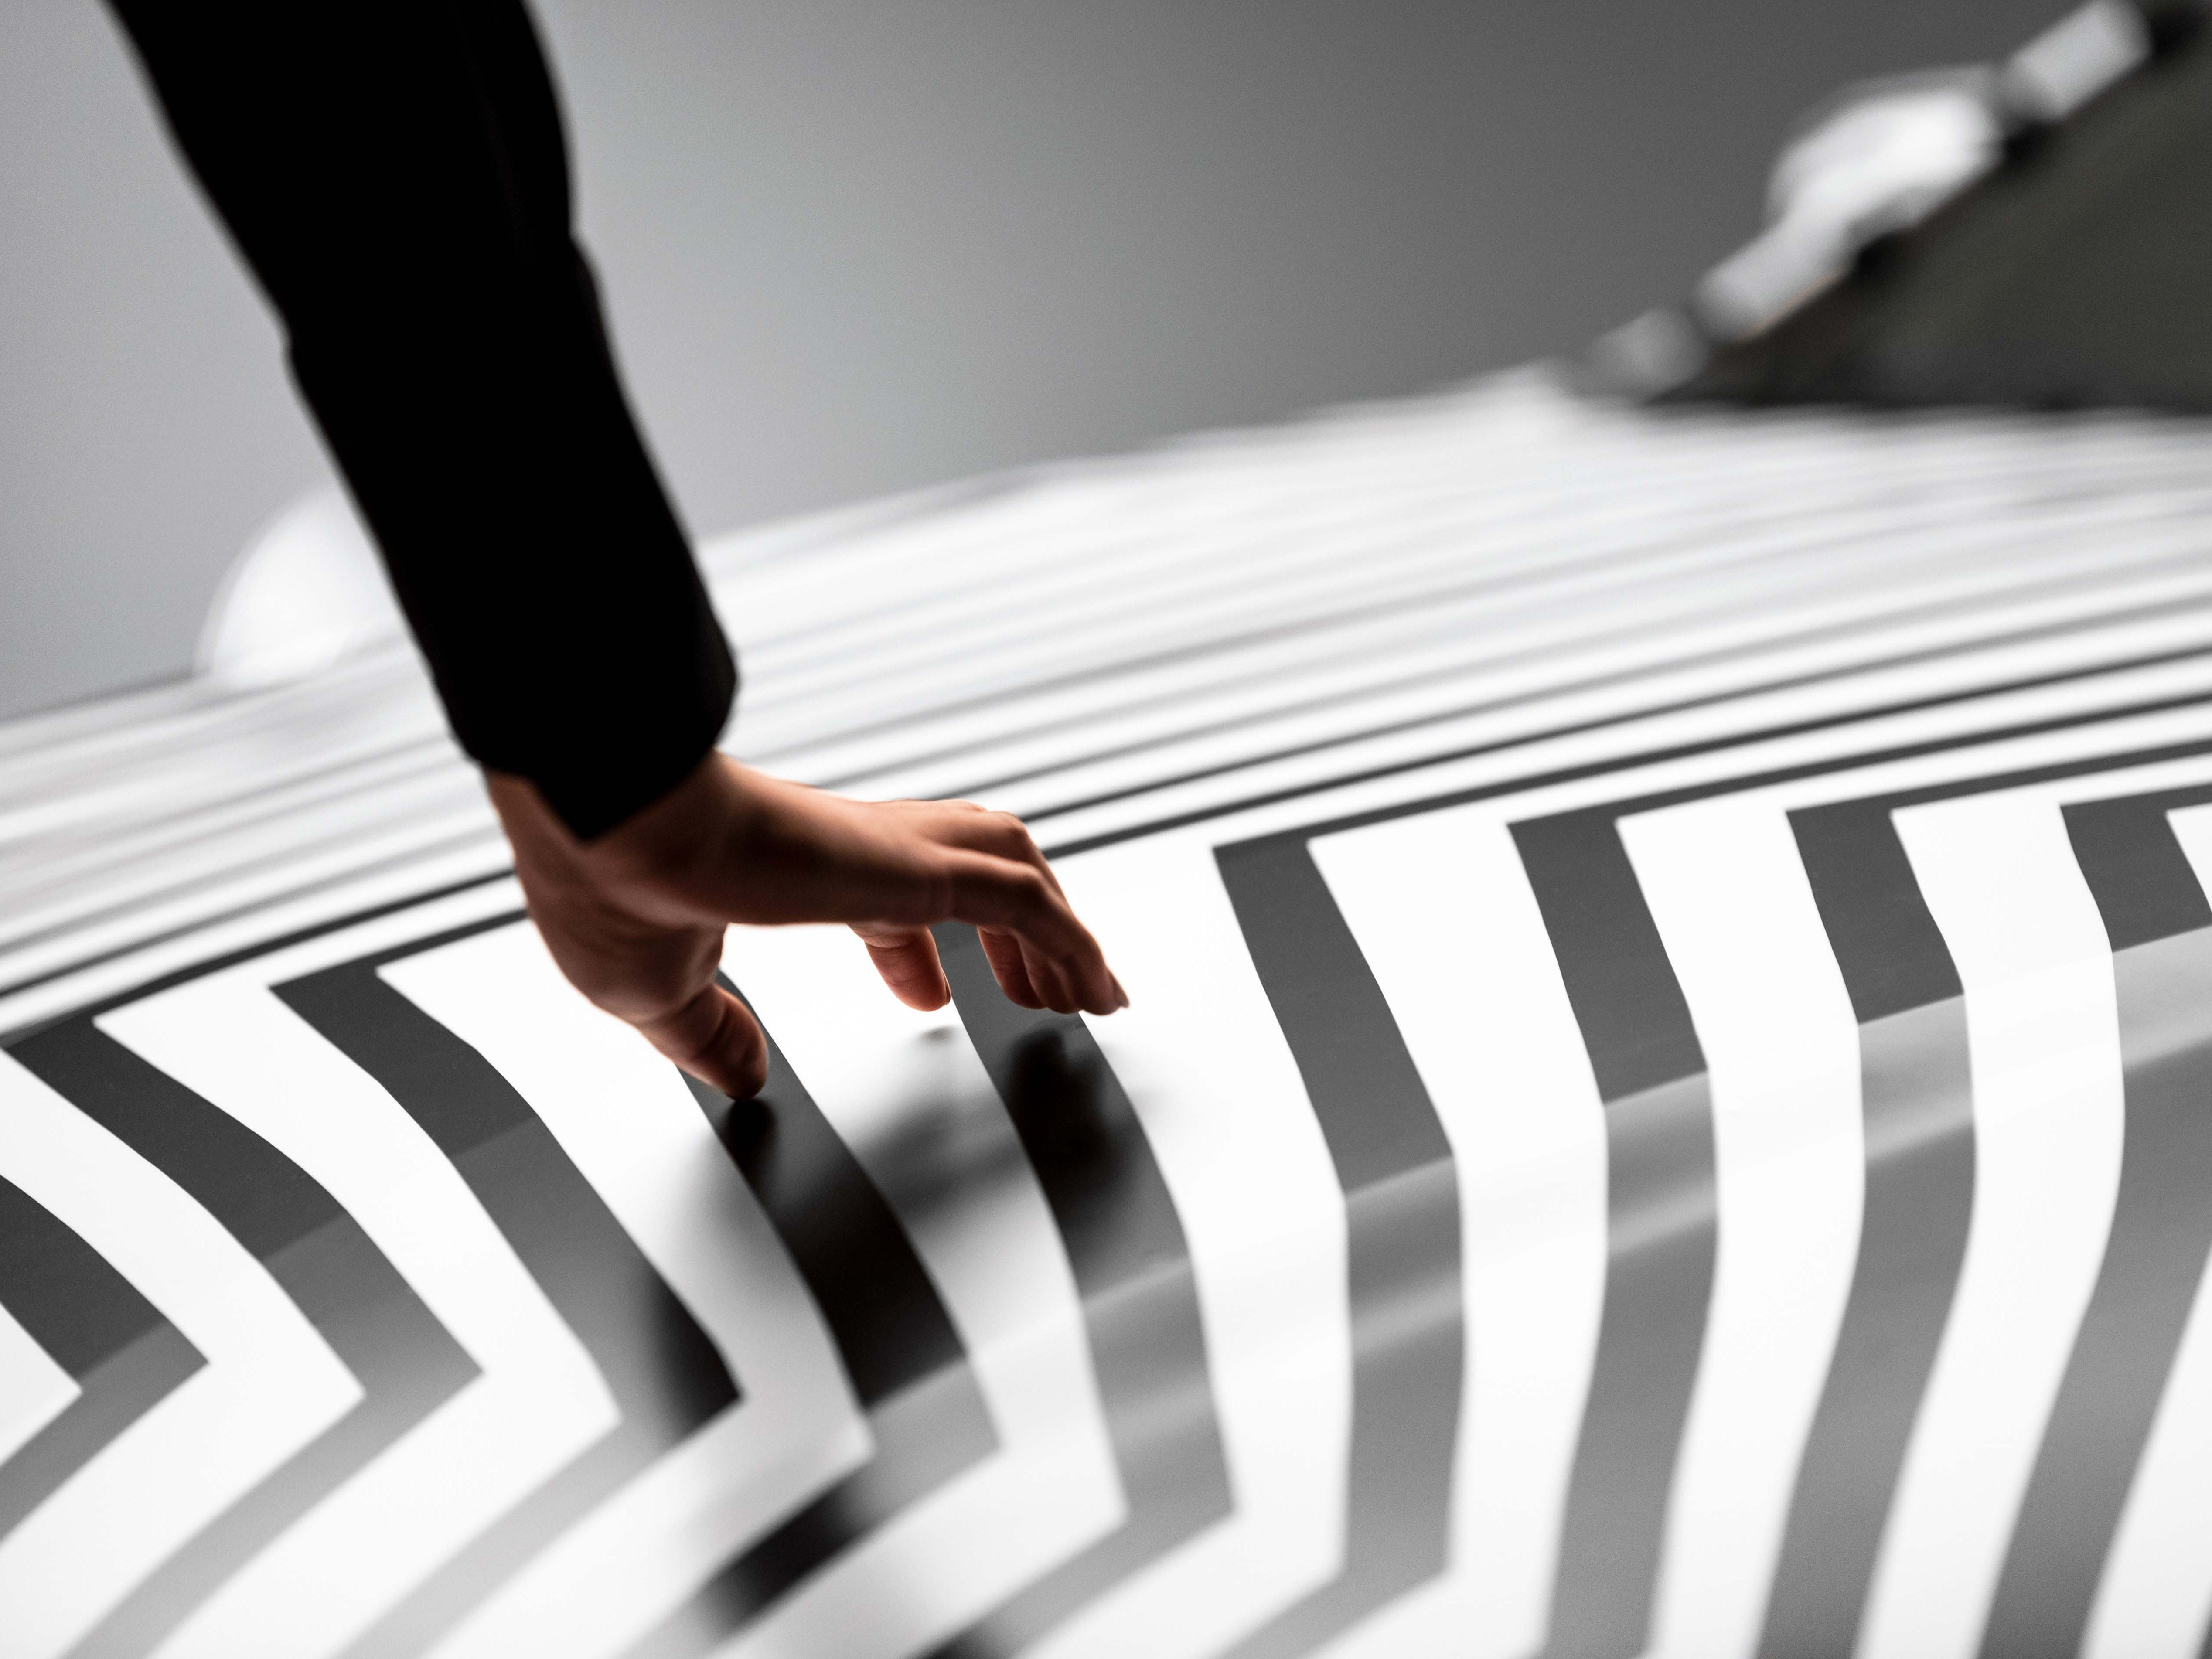 The Cadillac CT5 is being introduced through a series of YouTube videos leading up to its introduction at the NYC Auto Show April 17. Cadillac collaborated with artist Darel Carey to create a one-of-a-kind camouflage wrap for the Cadillac CT5. The black and white tape patterns reflect forms found in nature and distort the viewer's perception of space.